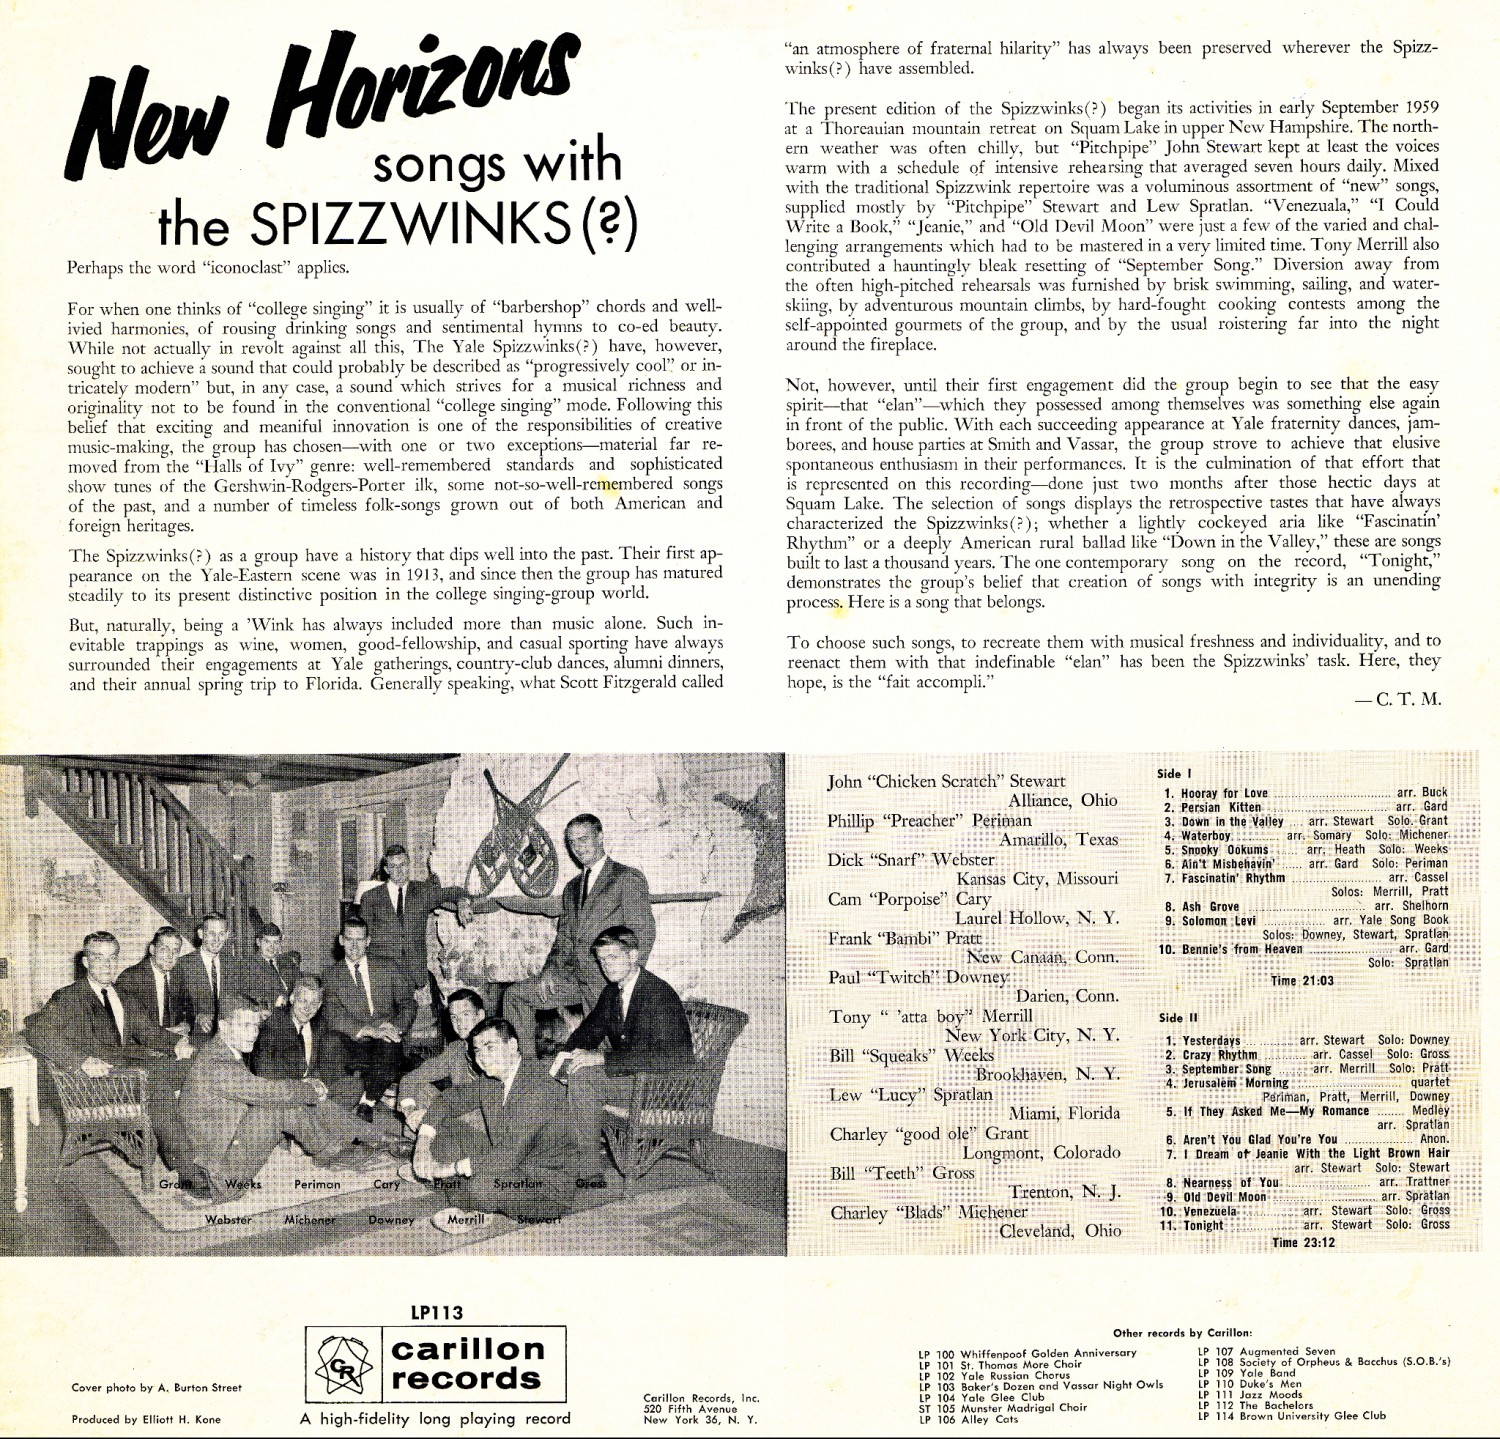 1960 New Horizons - back cover